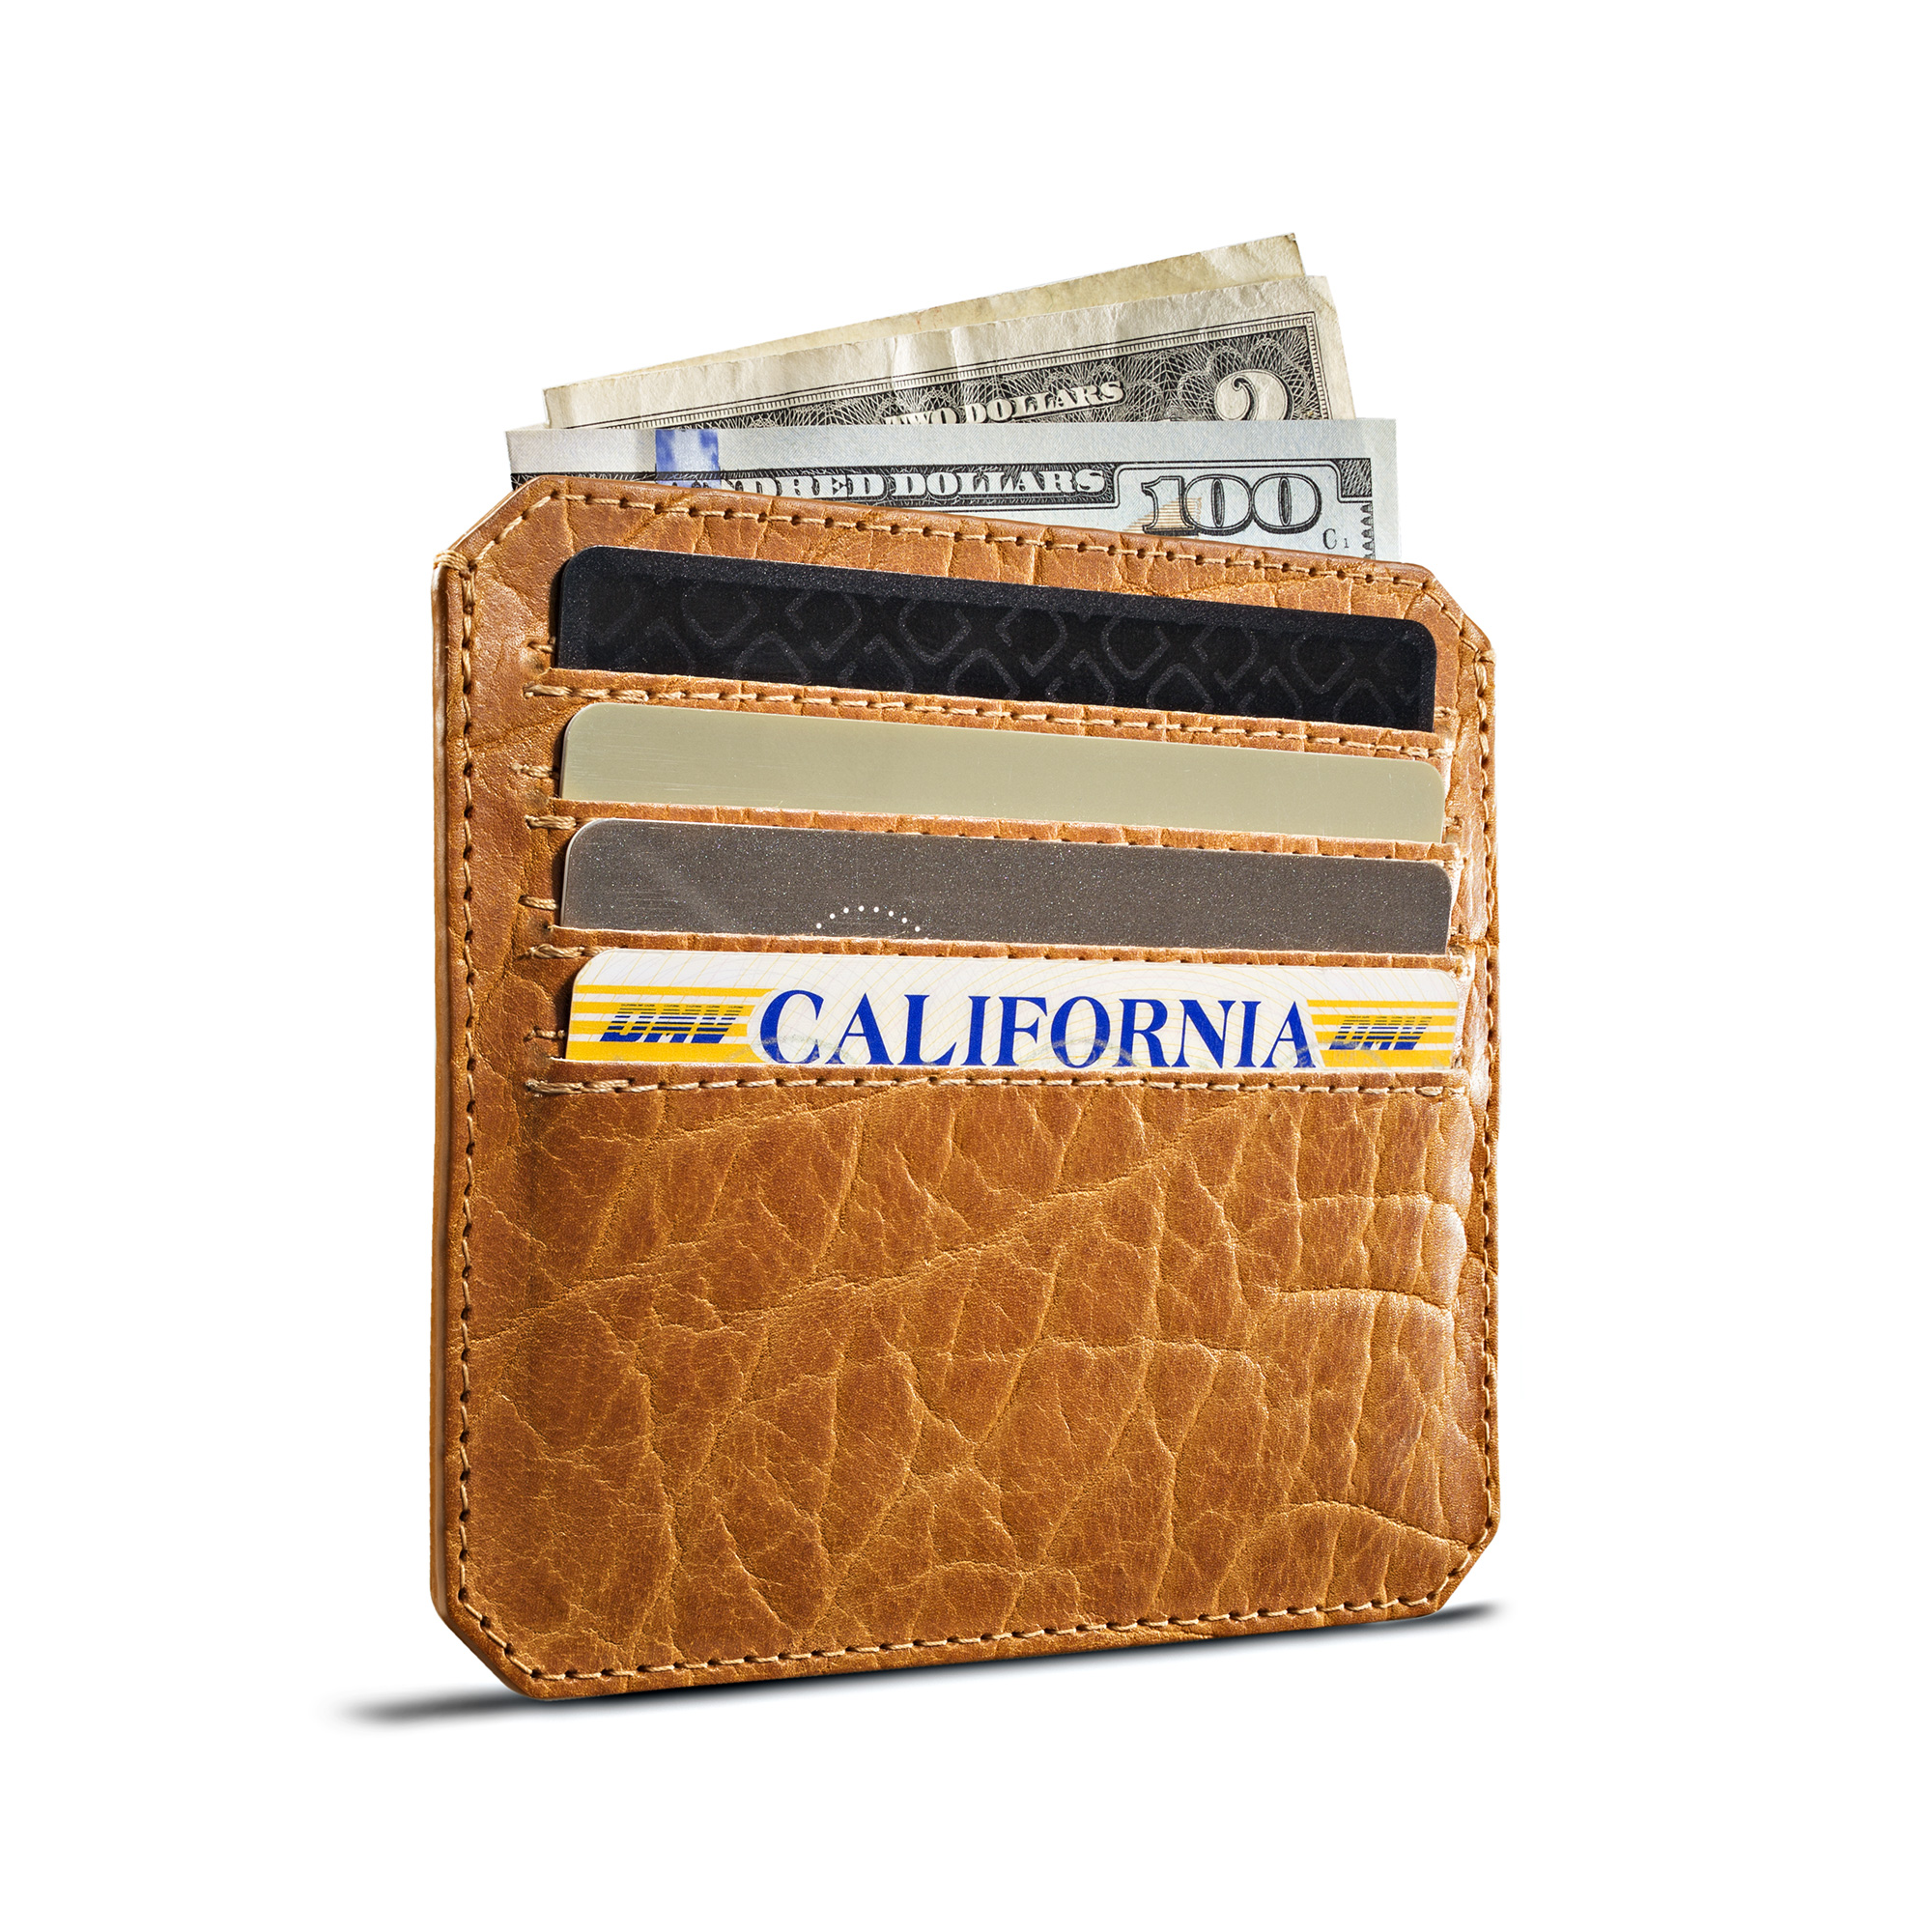 The Cash & Carry Wallet